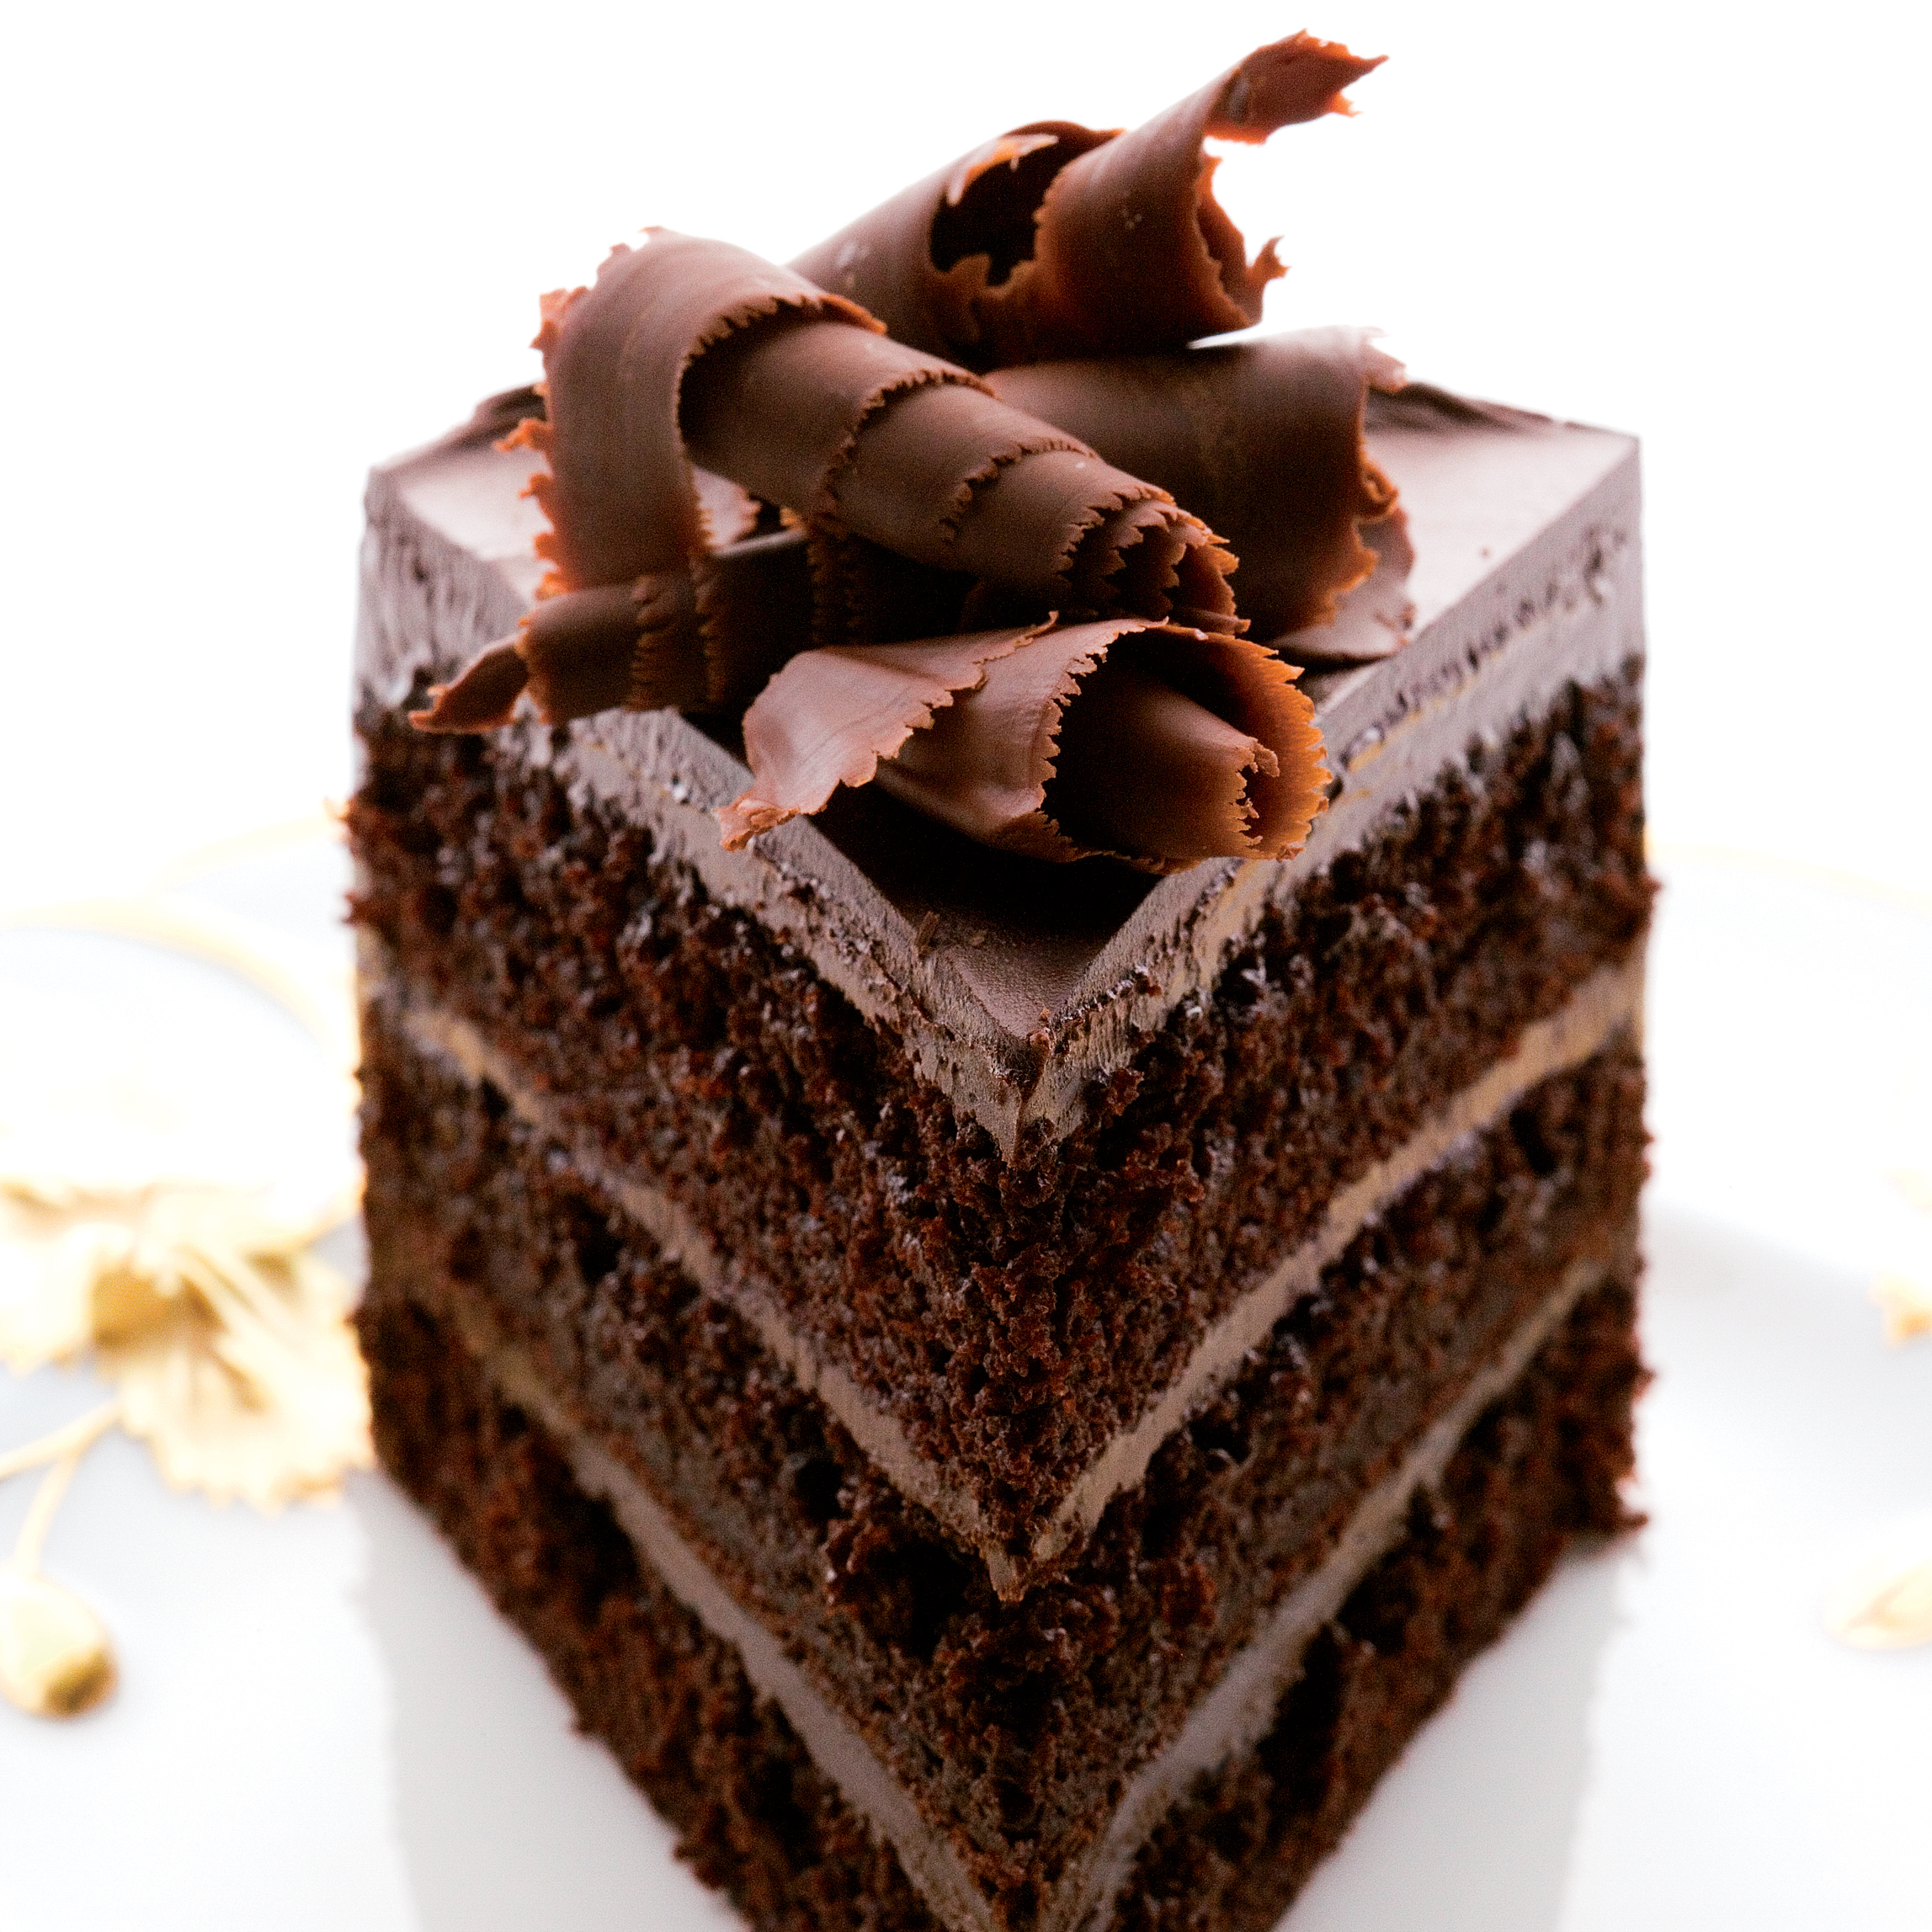 Video: How to Make the Ultimate Chocolate Cake